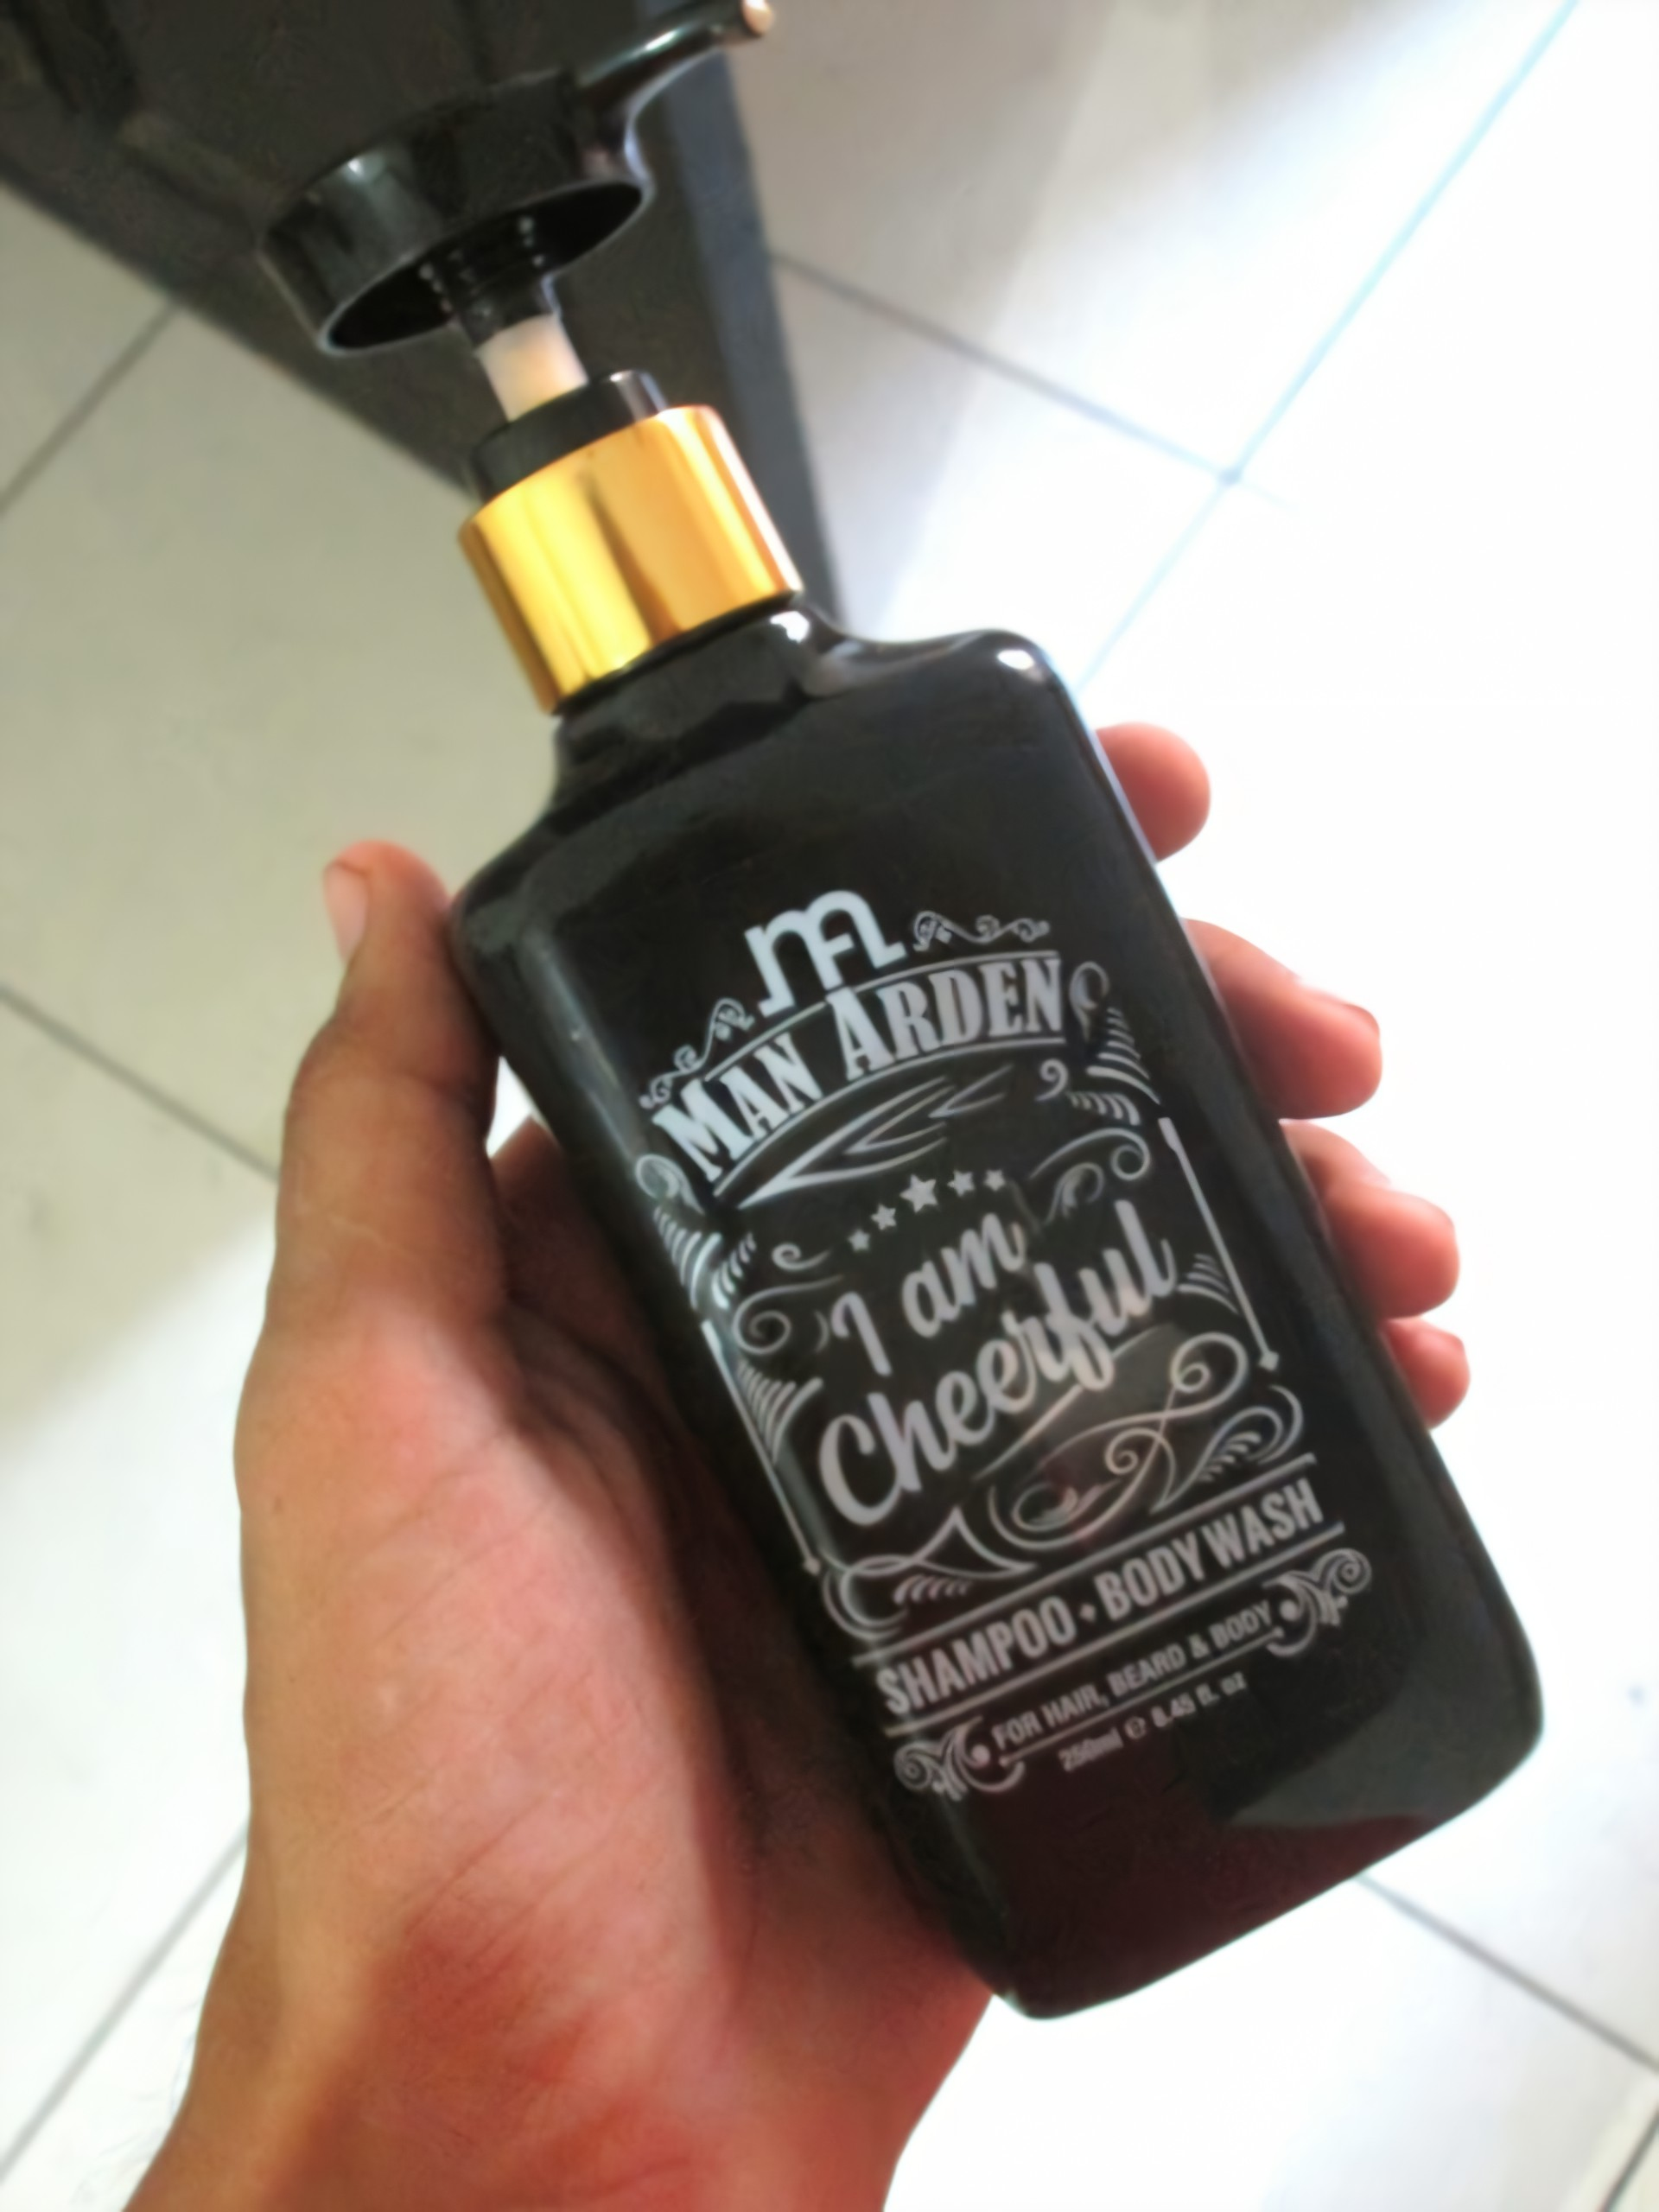 Man Arden I Am Cheerful Shampoo Bodywash-loved this product-By jaspreet89